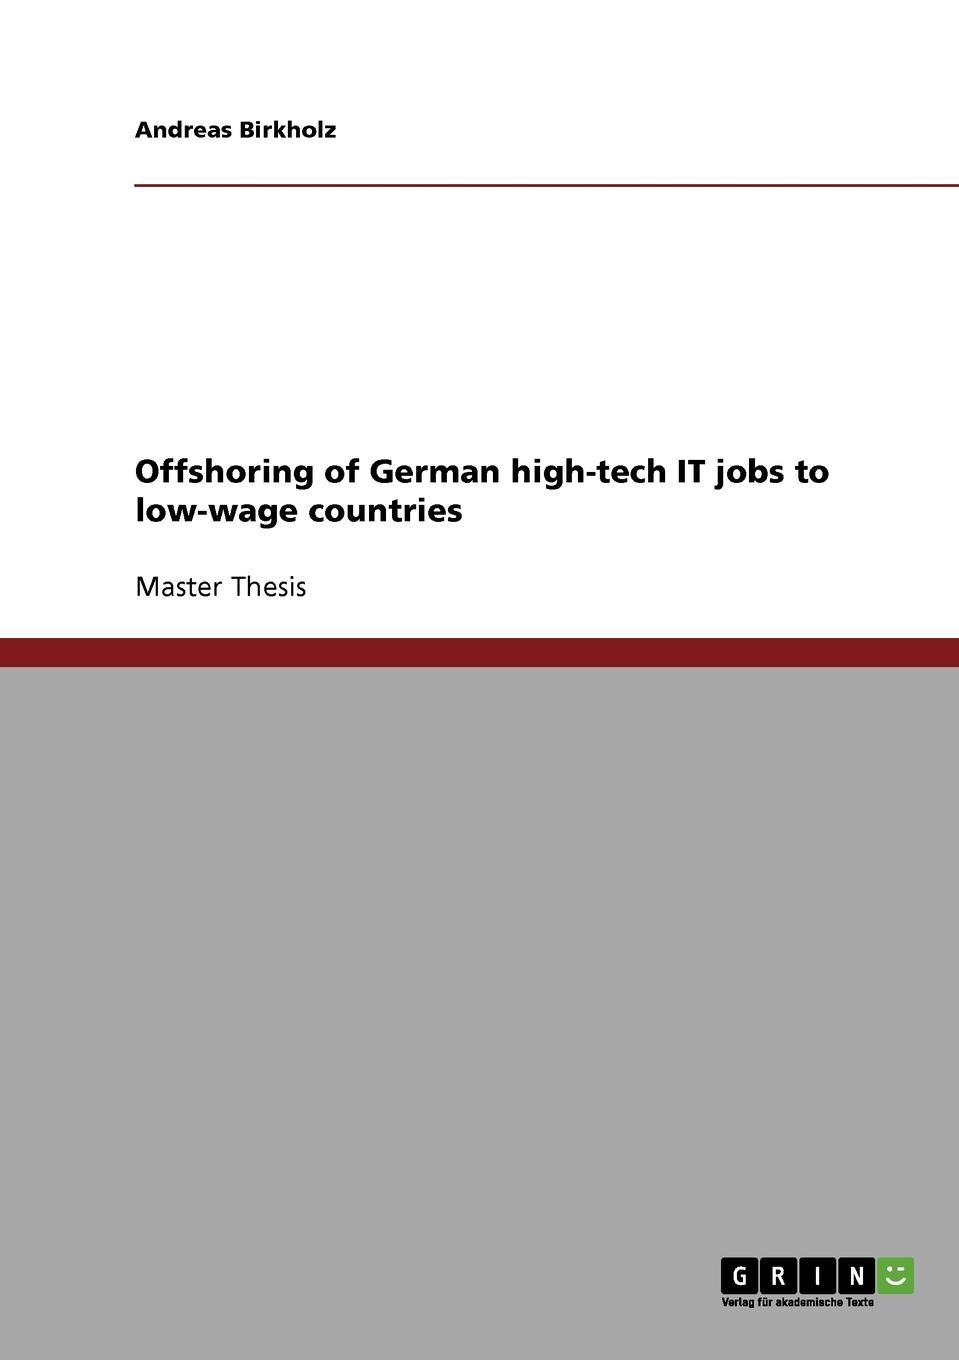 Offshoring of German high-tech IT jobs to low-wage countries Master's Thesis from the year 2004 in the subject Business...